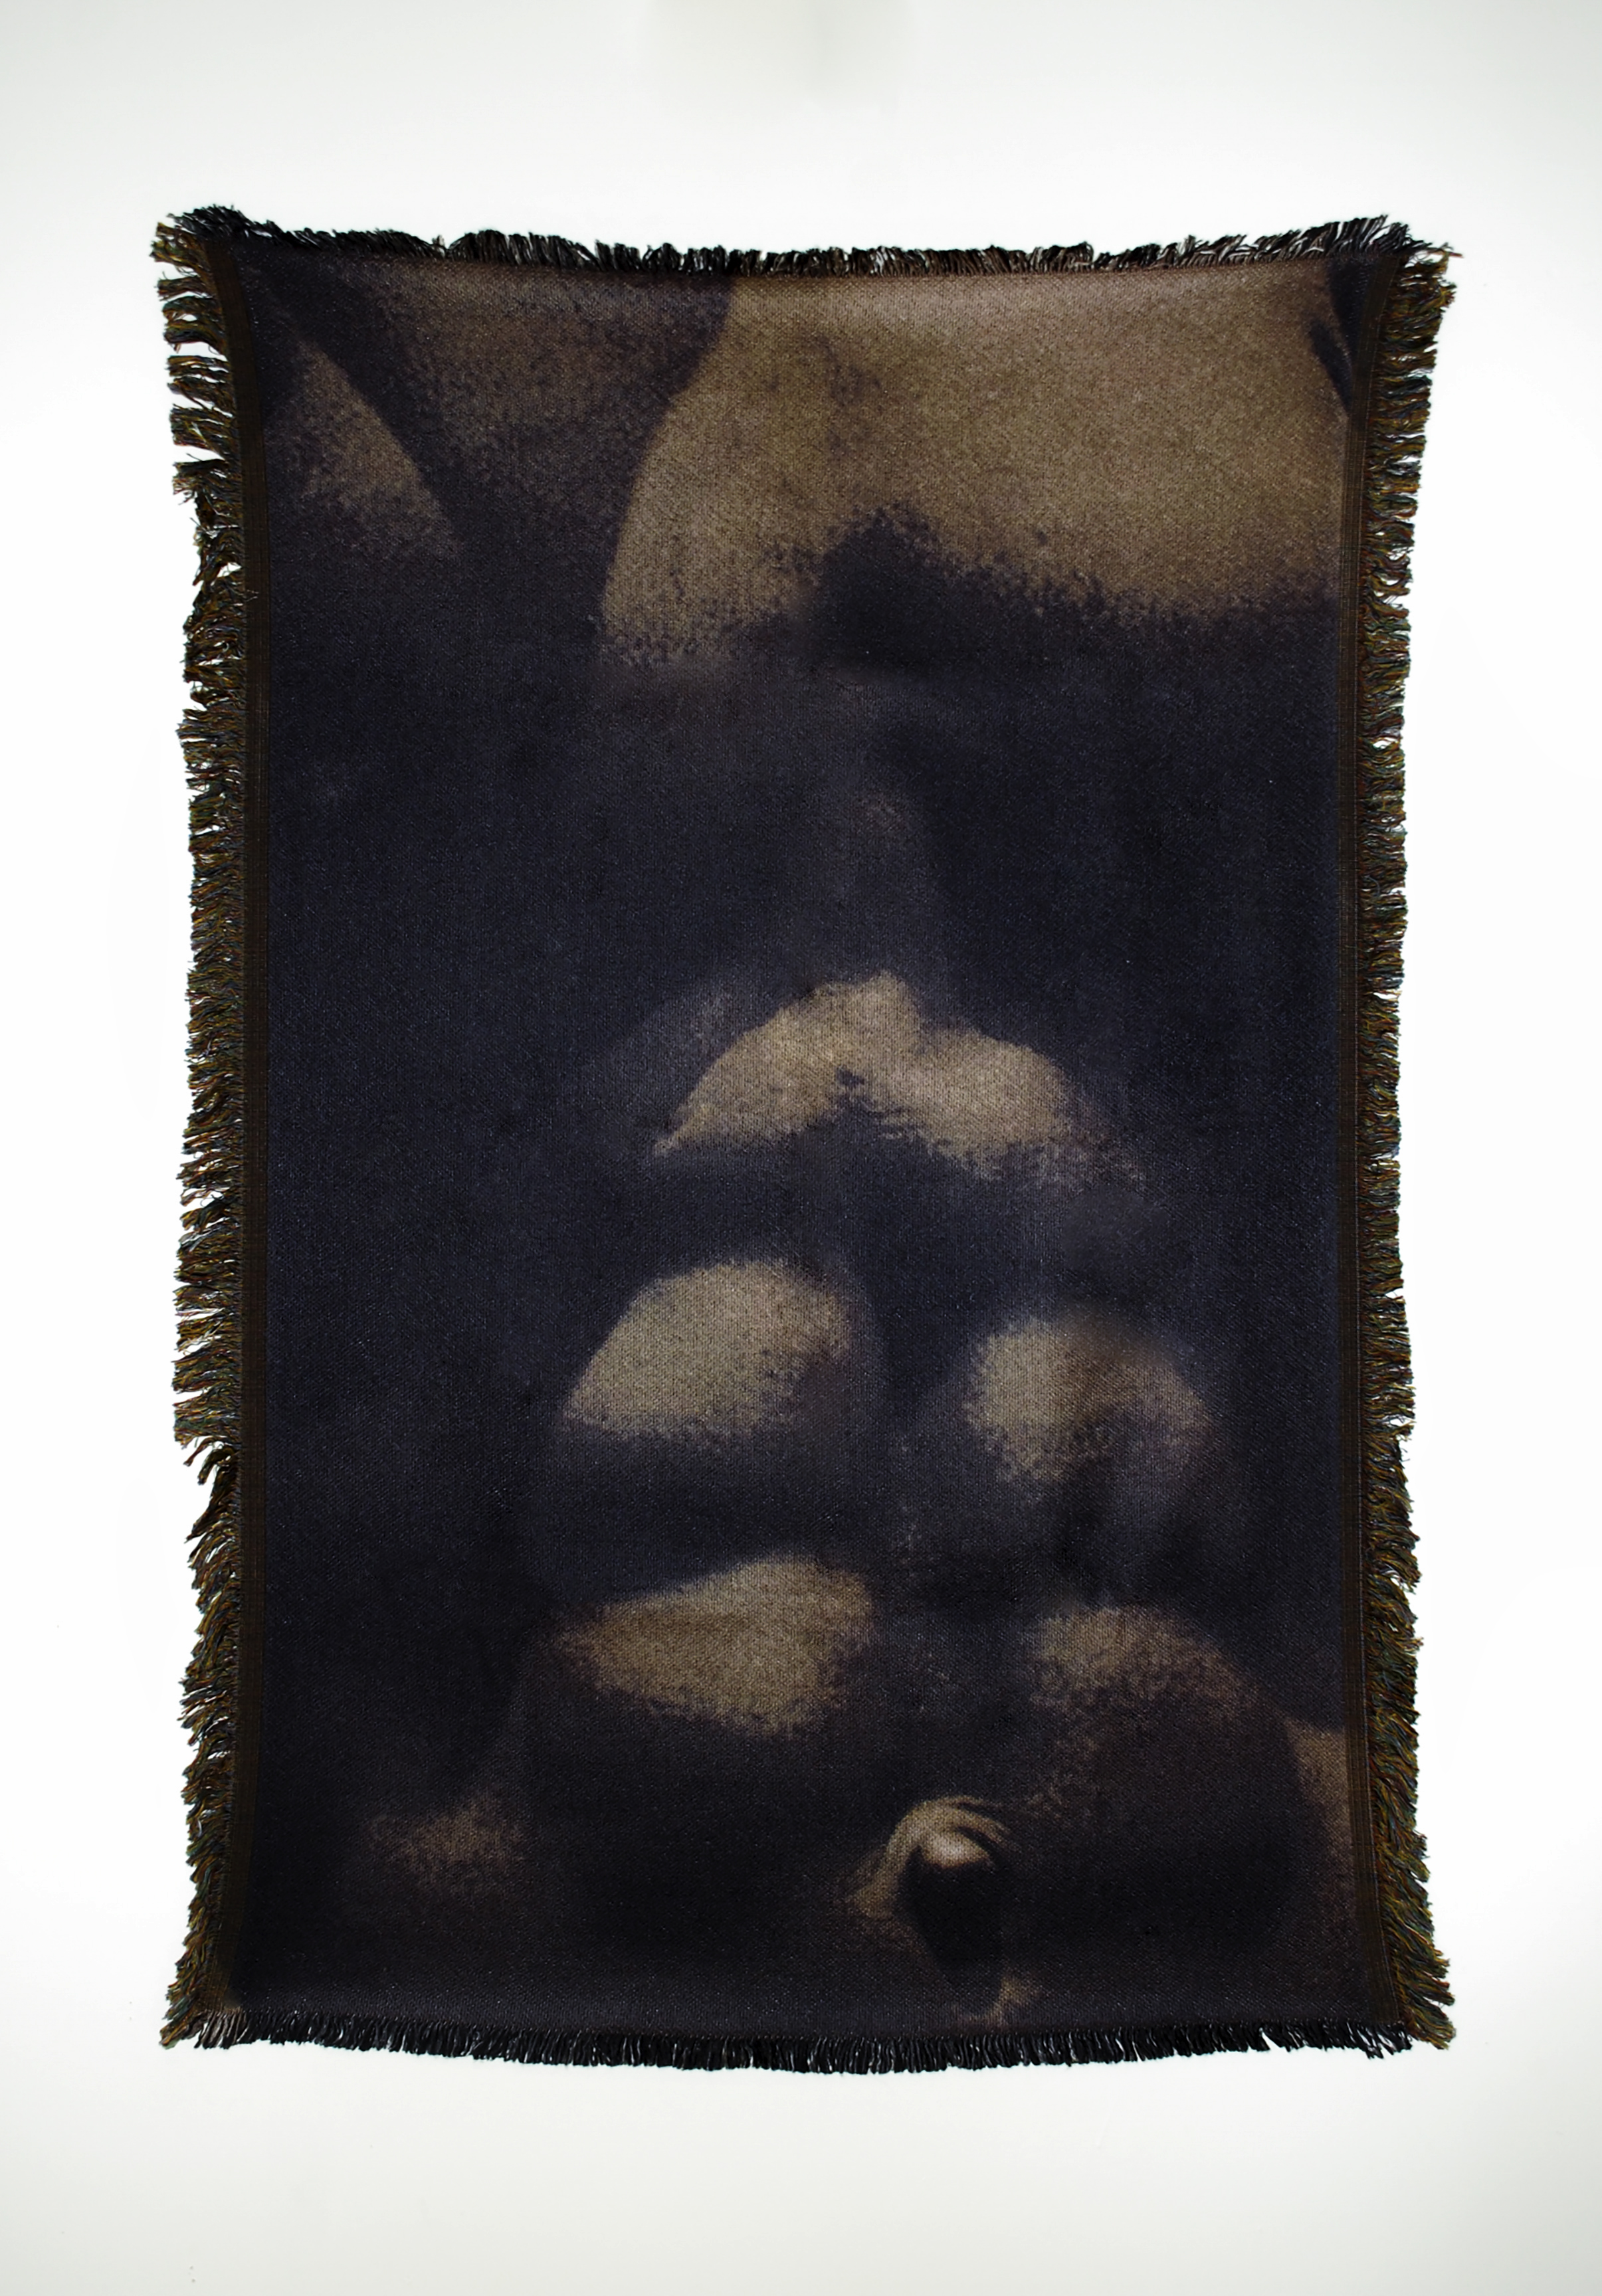 "Untitled (Cis-male 1)  54"" x 38"" photo-sublimated woven blanket"